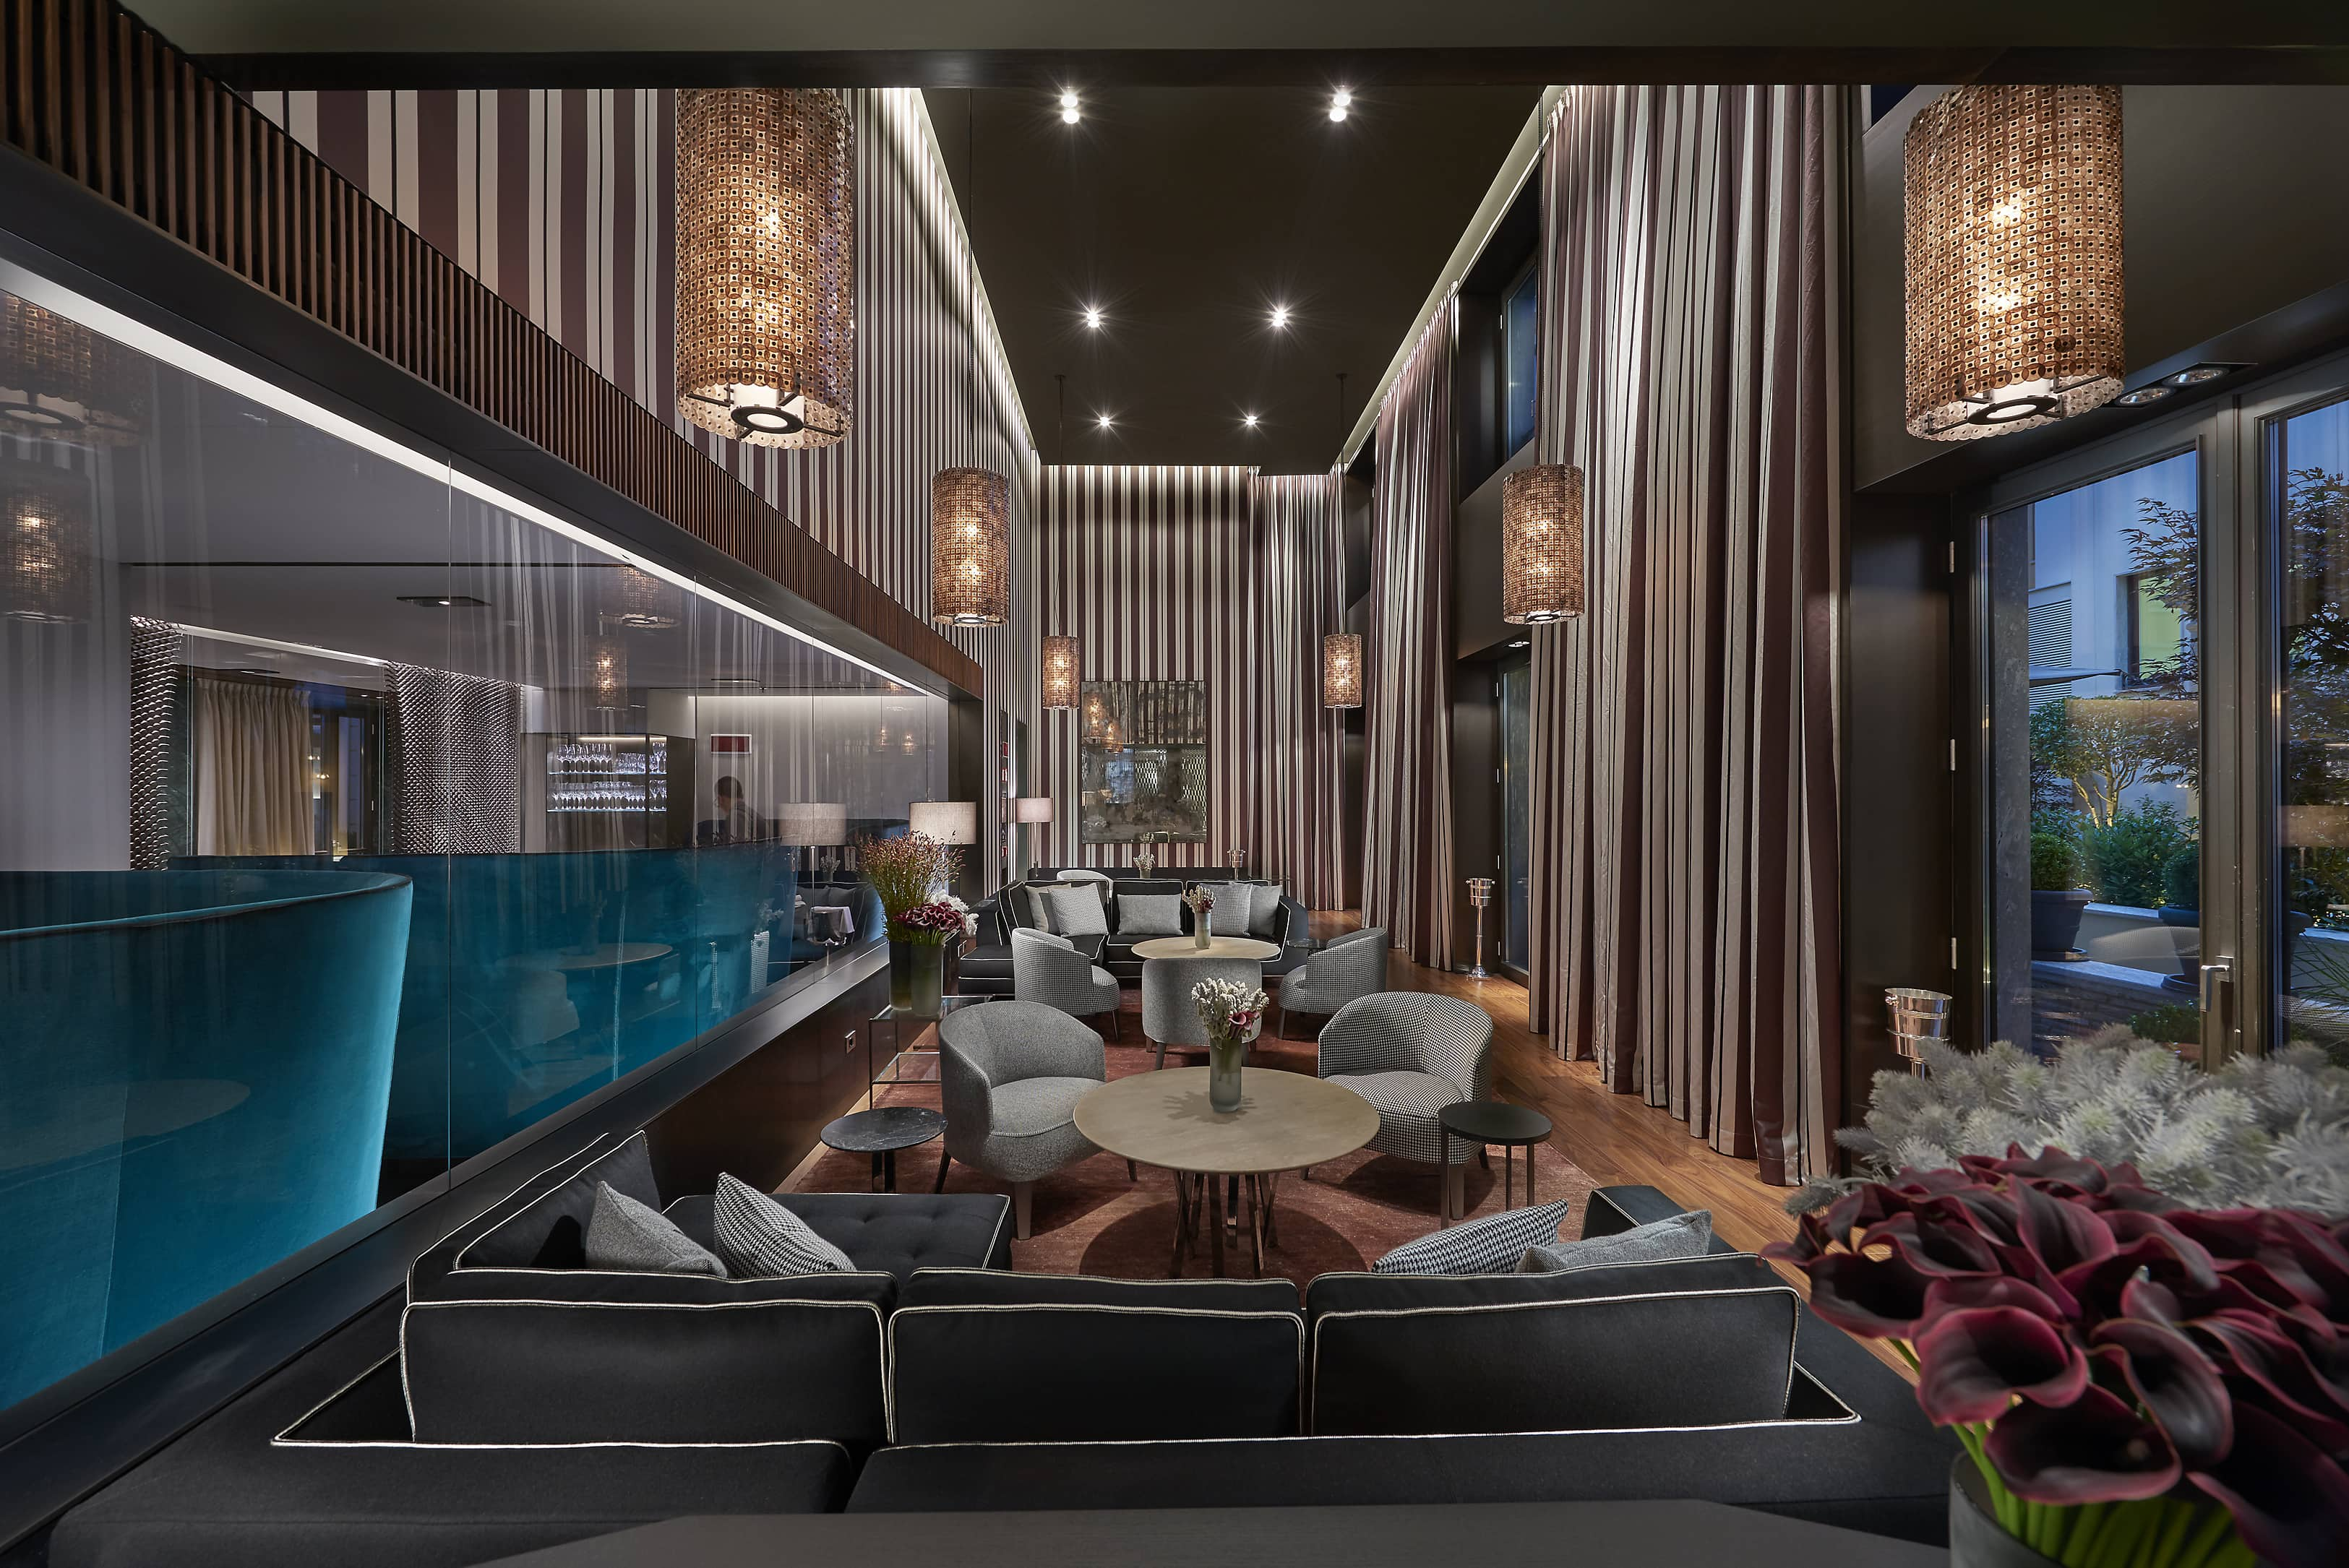 Milan hotel photo gallery mandarin oriental hotel milan for Hotel di design milano